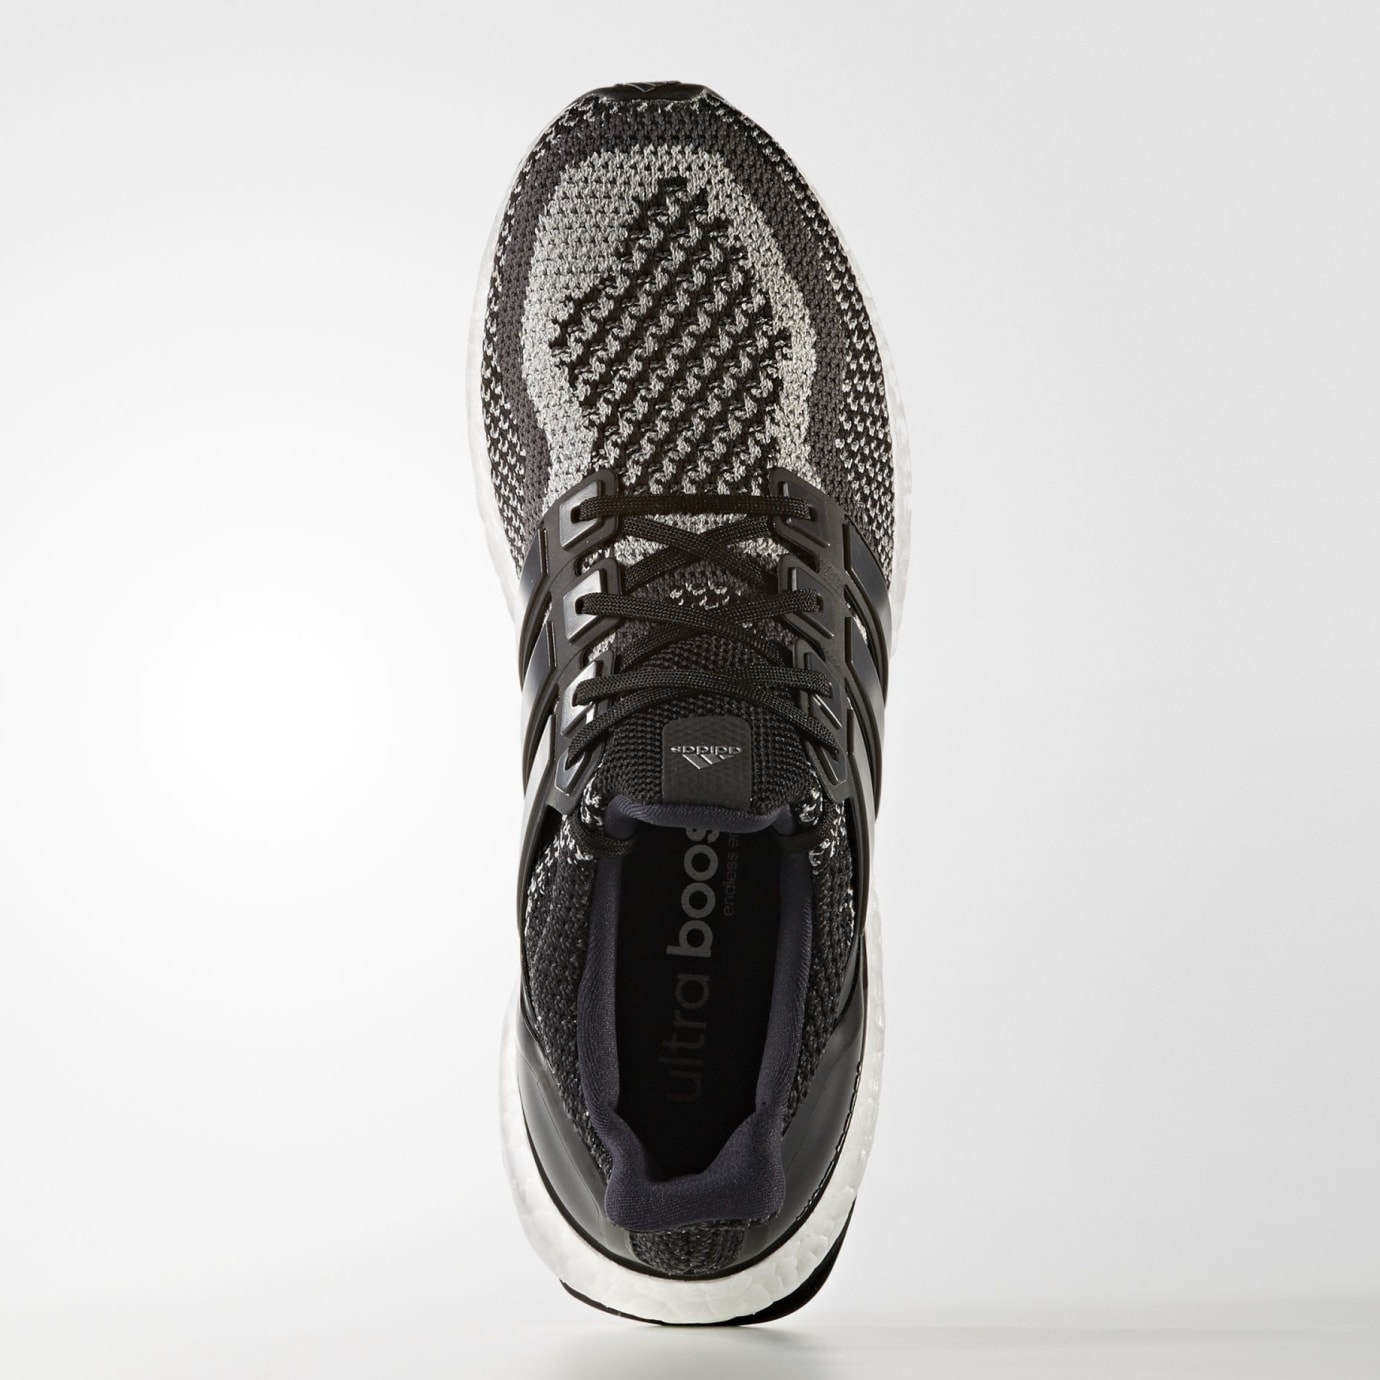 low priced 378ce b06b7 Adidas Ultra Boost 2.0 Reflective Release Date BY1795 | Sole ...